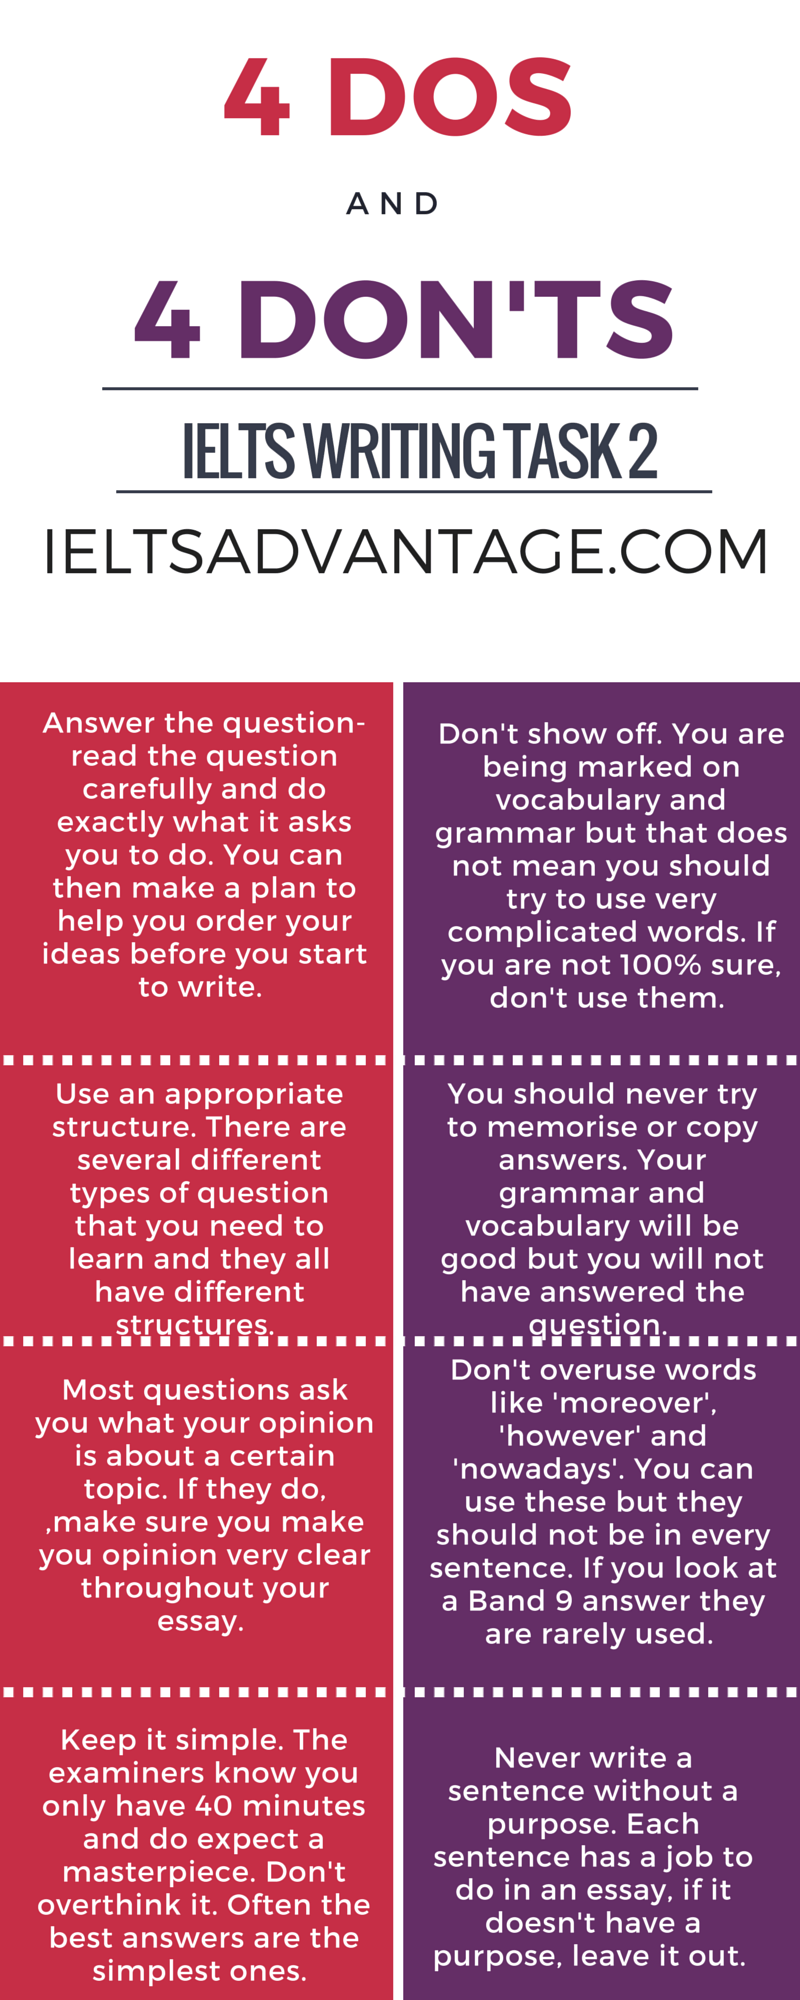 ielts writing tips infographic english writing some excellent ielts writing tips to make the most of your task 2 essay ielts essay writing can be difficult to master but these top tips for ielts